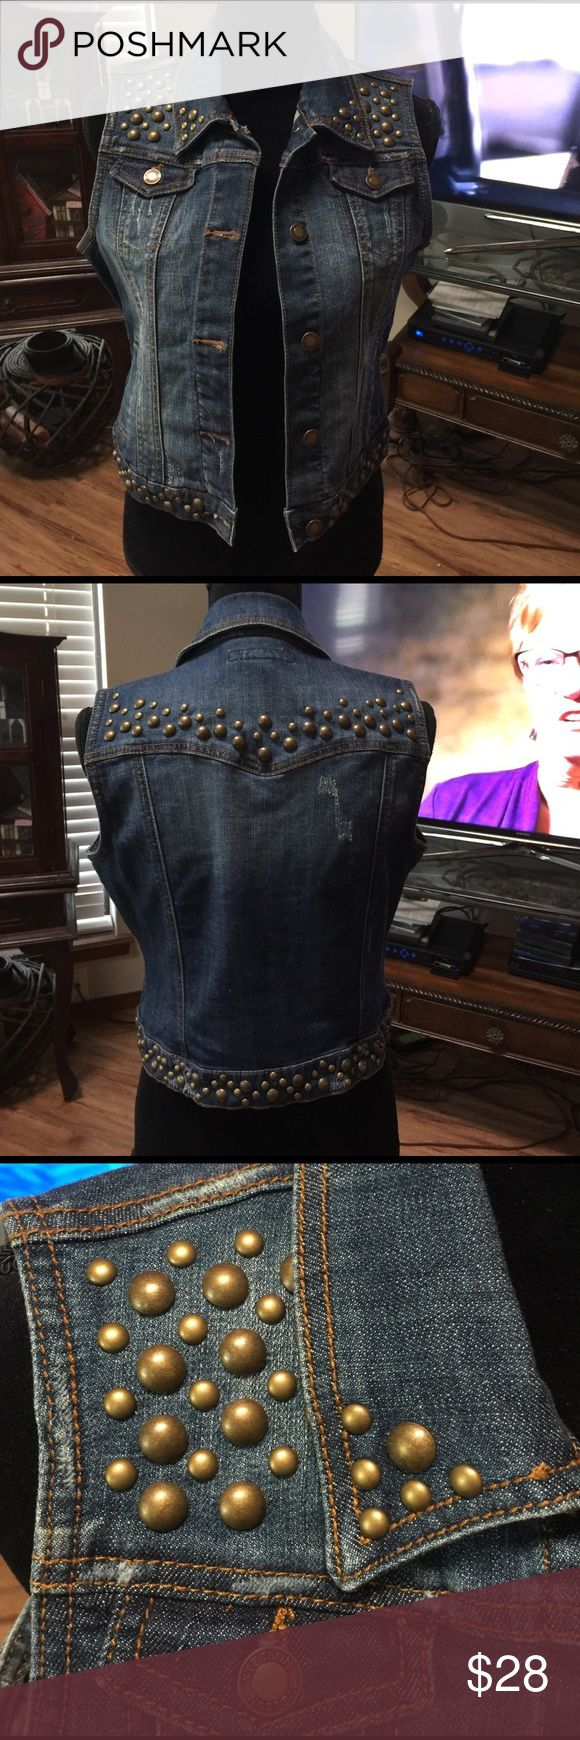 "Stetson studded sleeveless jean jacket Only wore a couple of times. Looks new.  19"" from shoulder to bottom of jacket. Next day shipping Stetson Jackets & Coats Jean Jackets"